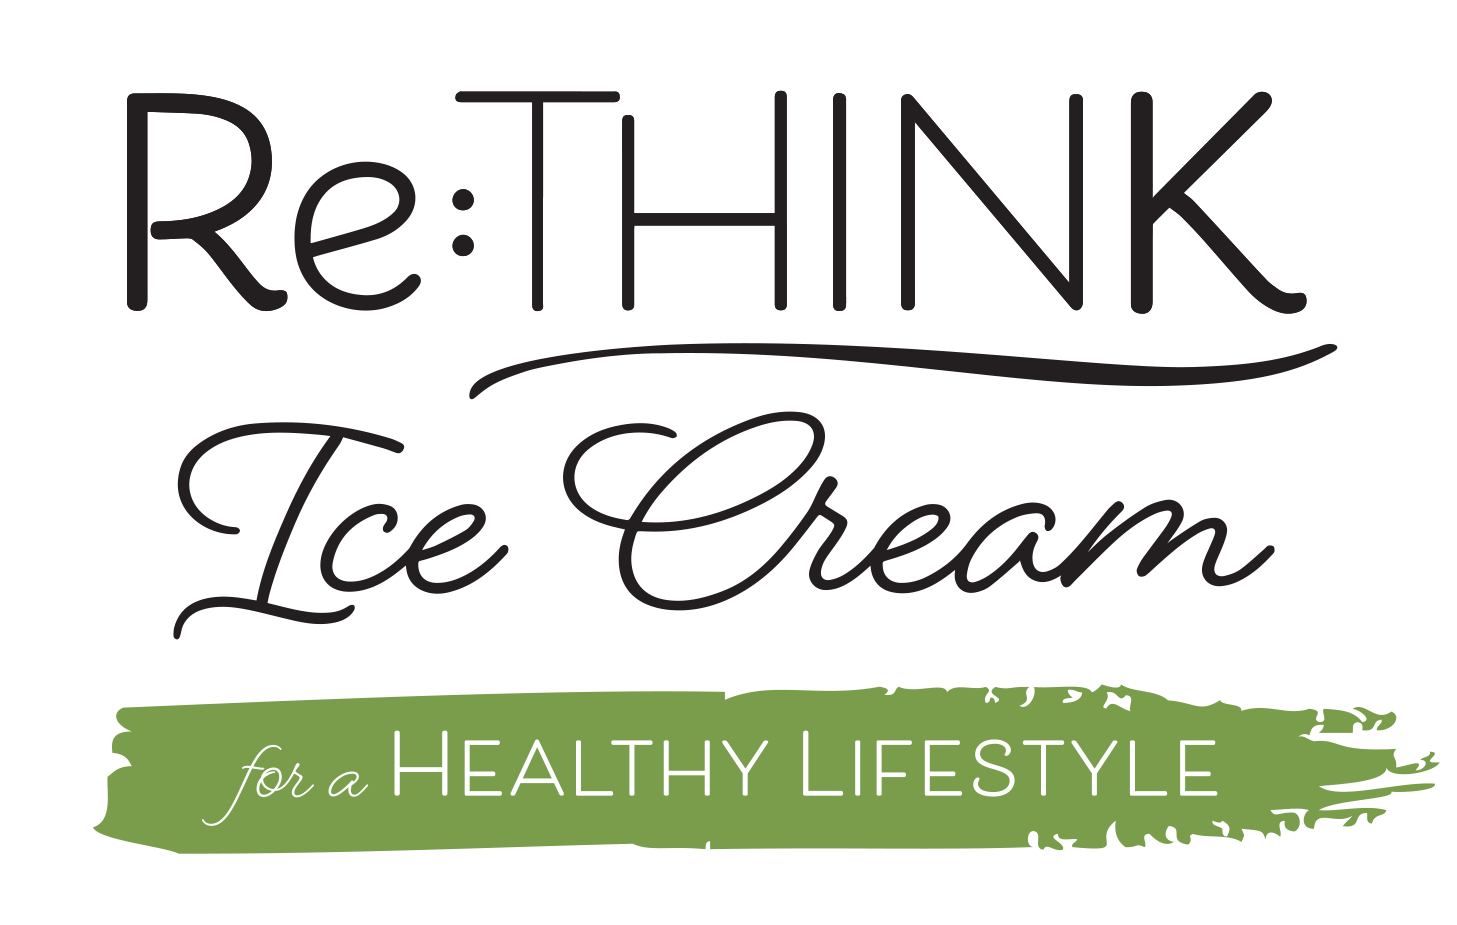 Re:THINK Ice Cream